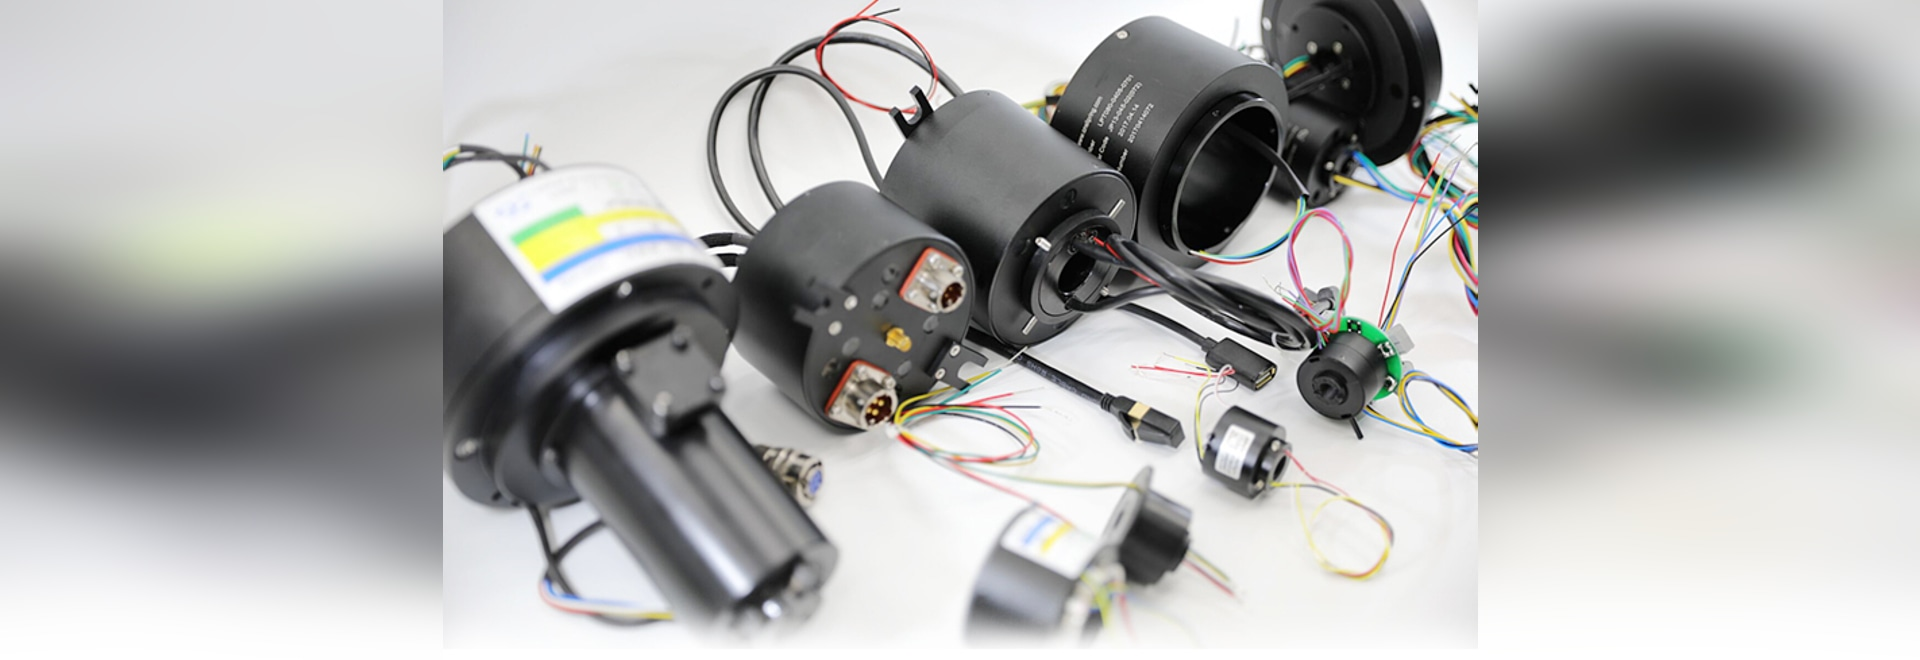 Slip ring assemblies for radar antennas